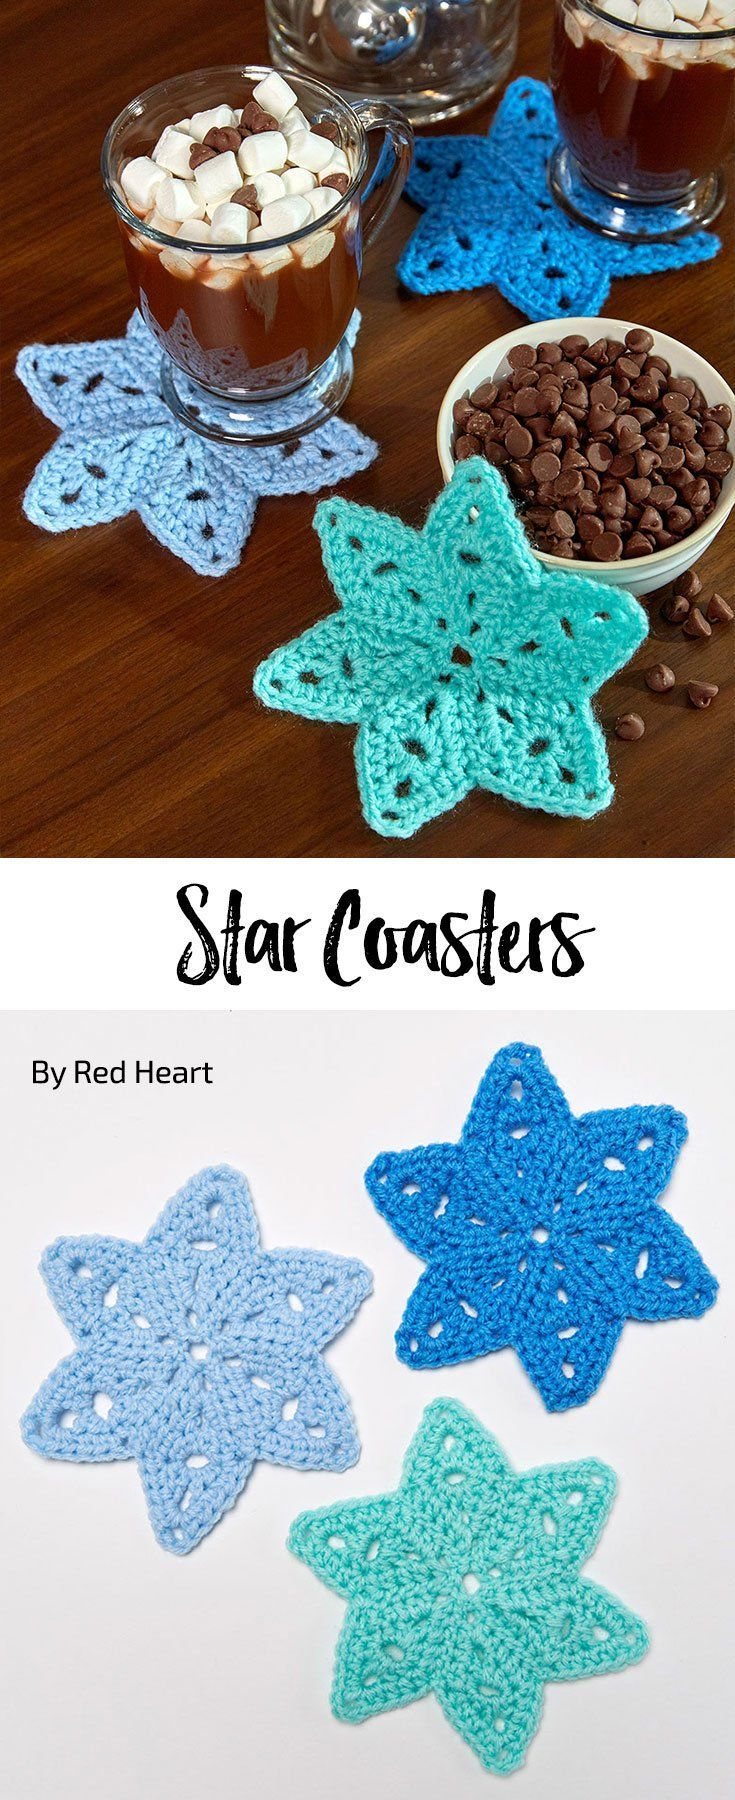 Star Coasters Free Crochet Pattern In Super Saver Crochetchristmas Coaster Patterns Diagrams A Few Pretty Snowflakes